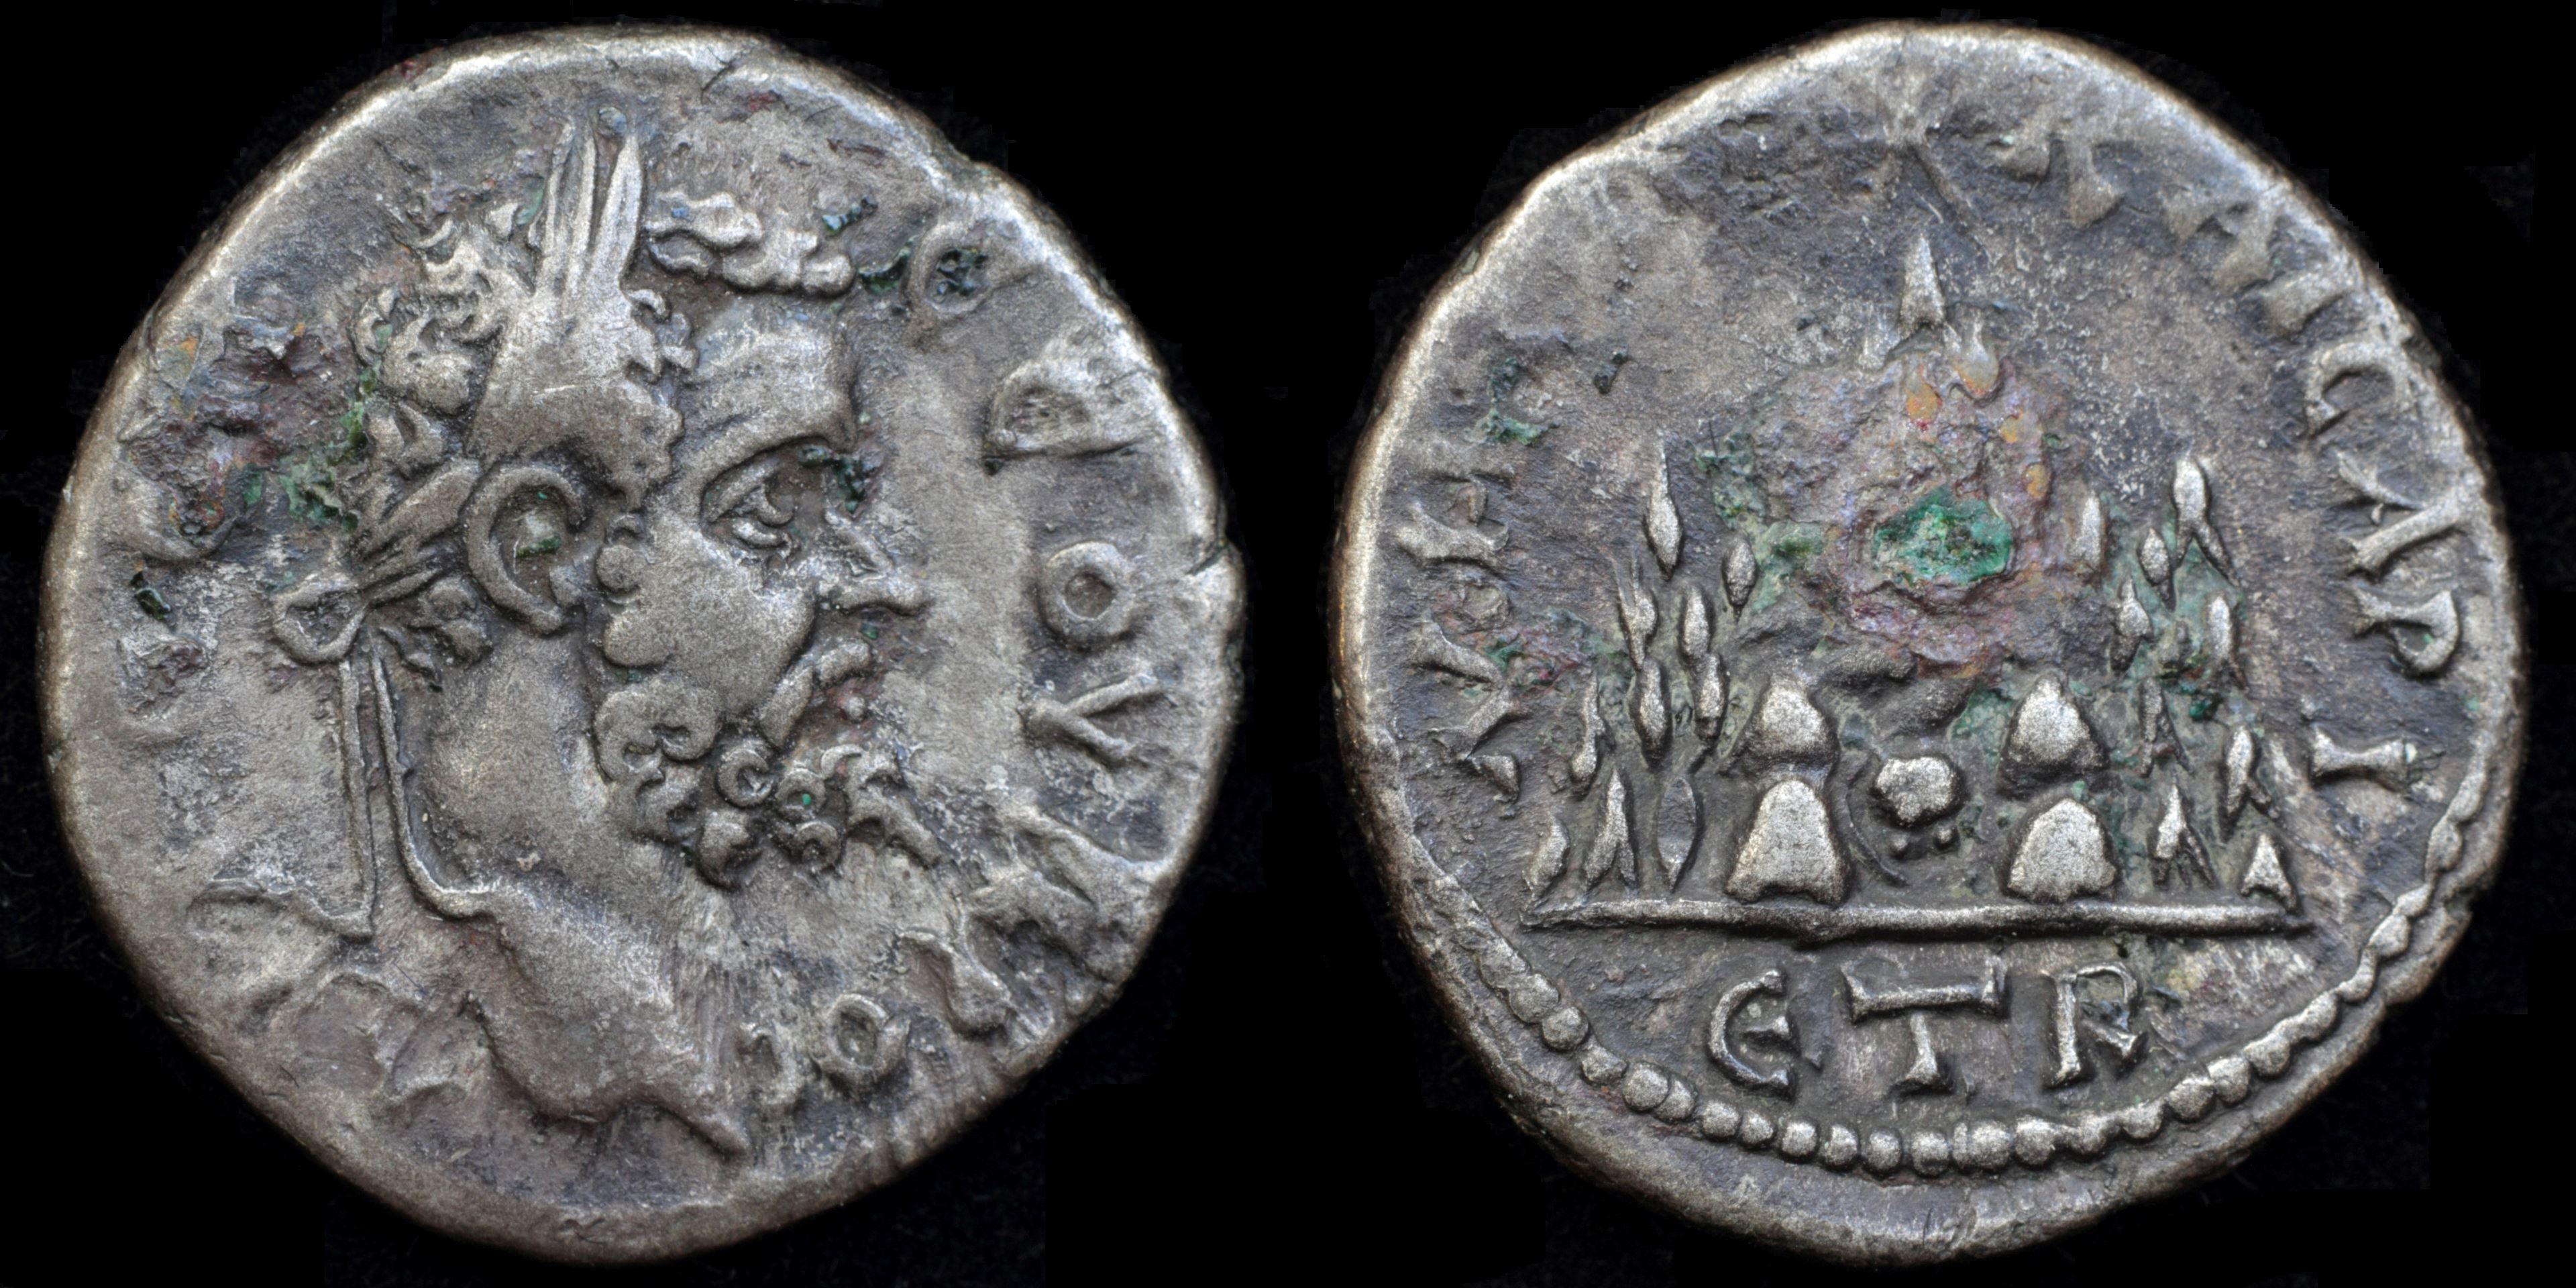 /Files/Images/Coinsite/CoinDB/Septimius_Severus_Caesarea.jpg